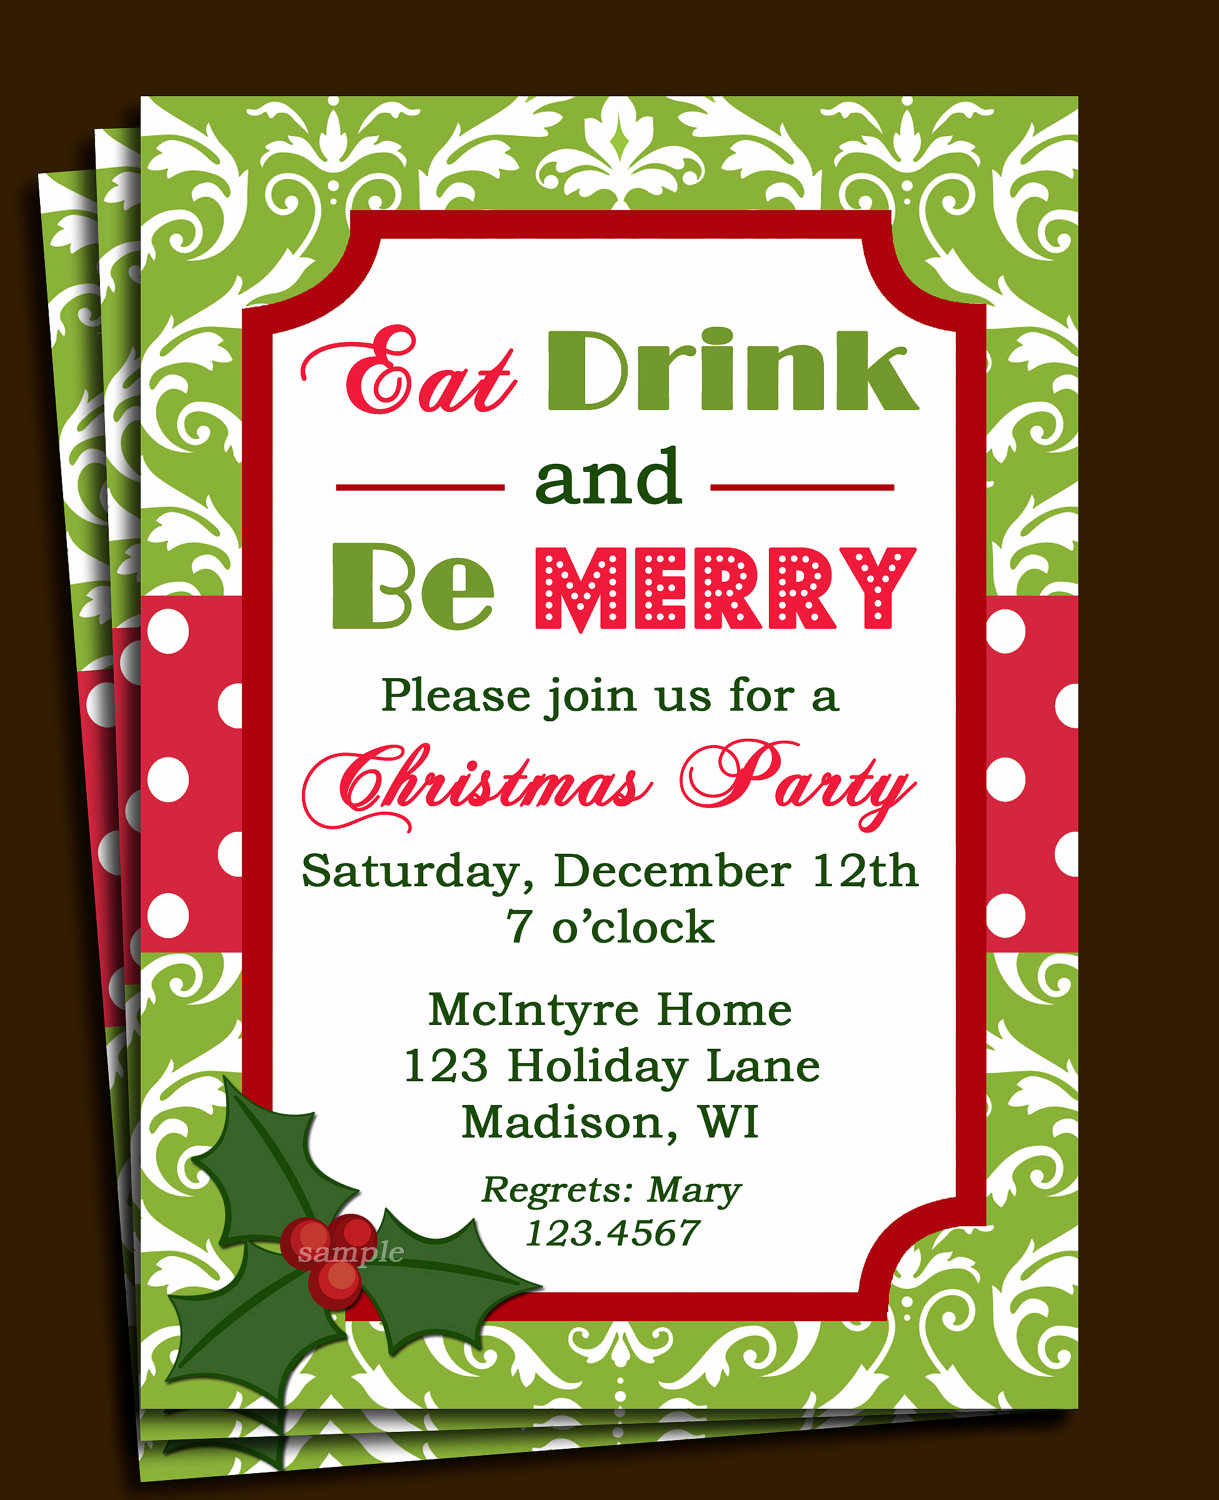 Holiday Party Invitation Template Unique Christmas Party Invitation Printable or Printed with Free